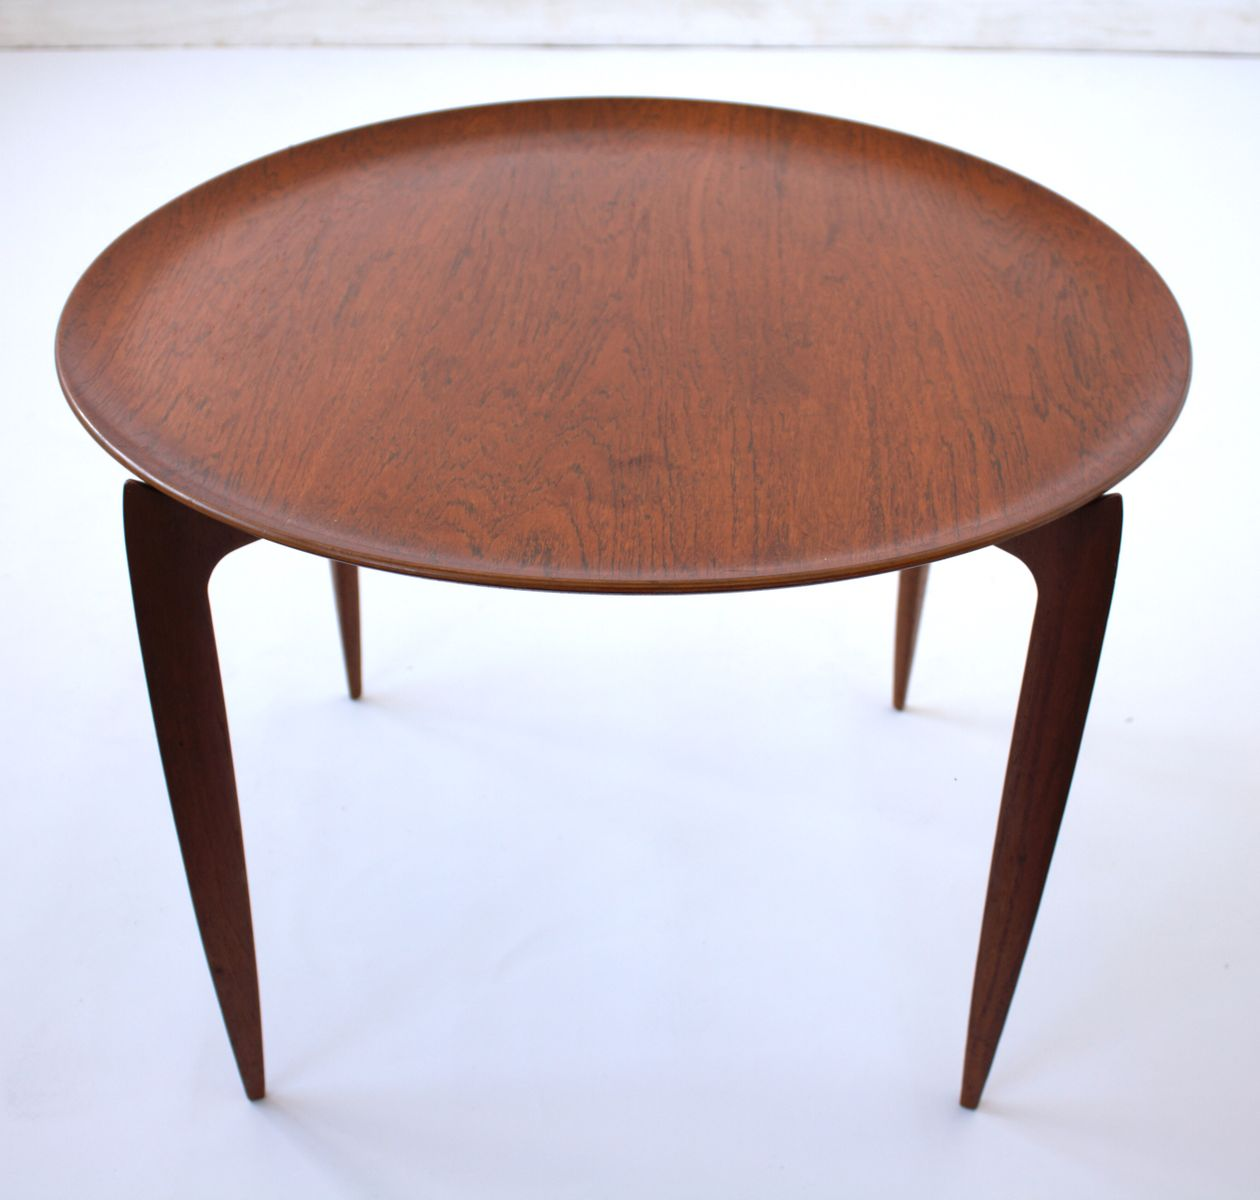 Teak Table With Collapsible Top By Svend Aage Willumsen U0026 H. Engholm For  Fritz Hansen, 1950s